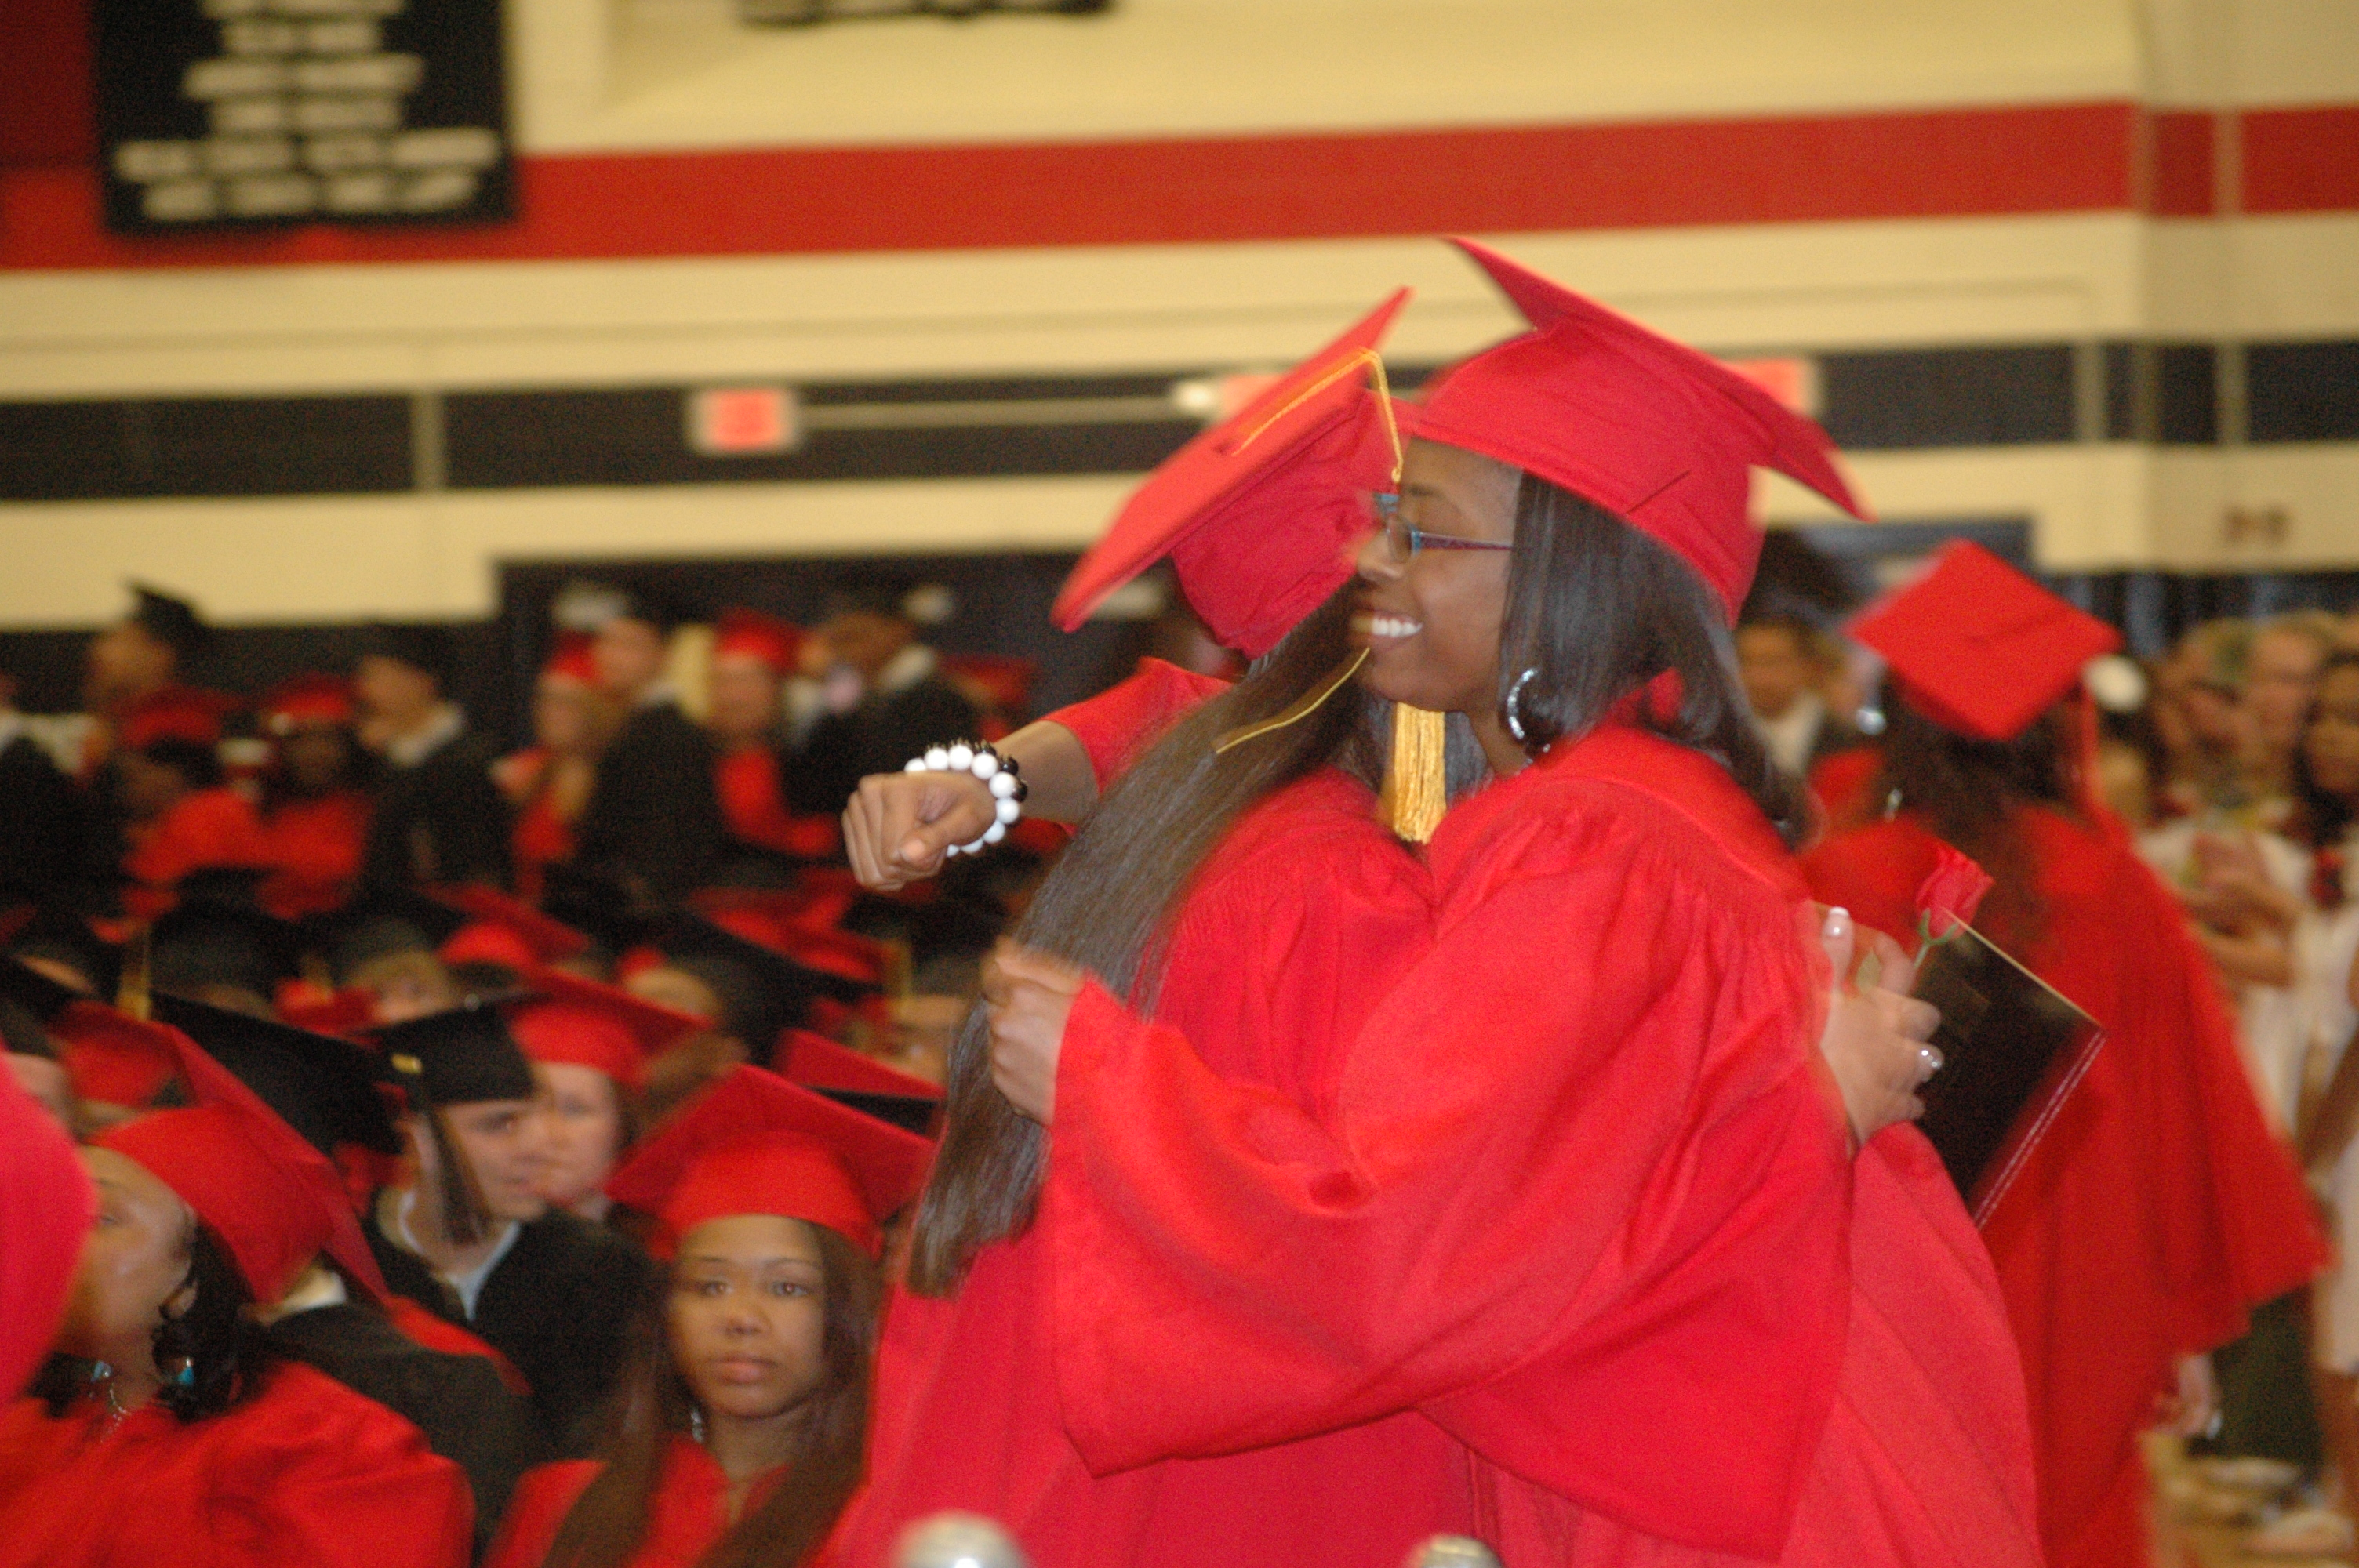 Hugs were plentiful at the Coatesville Area Senior High School commencement.